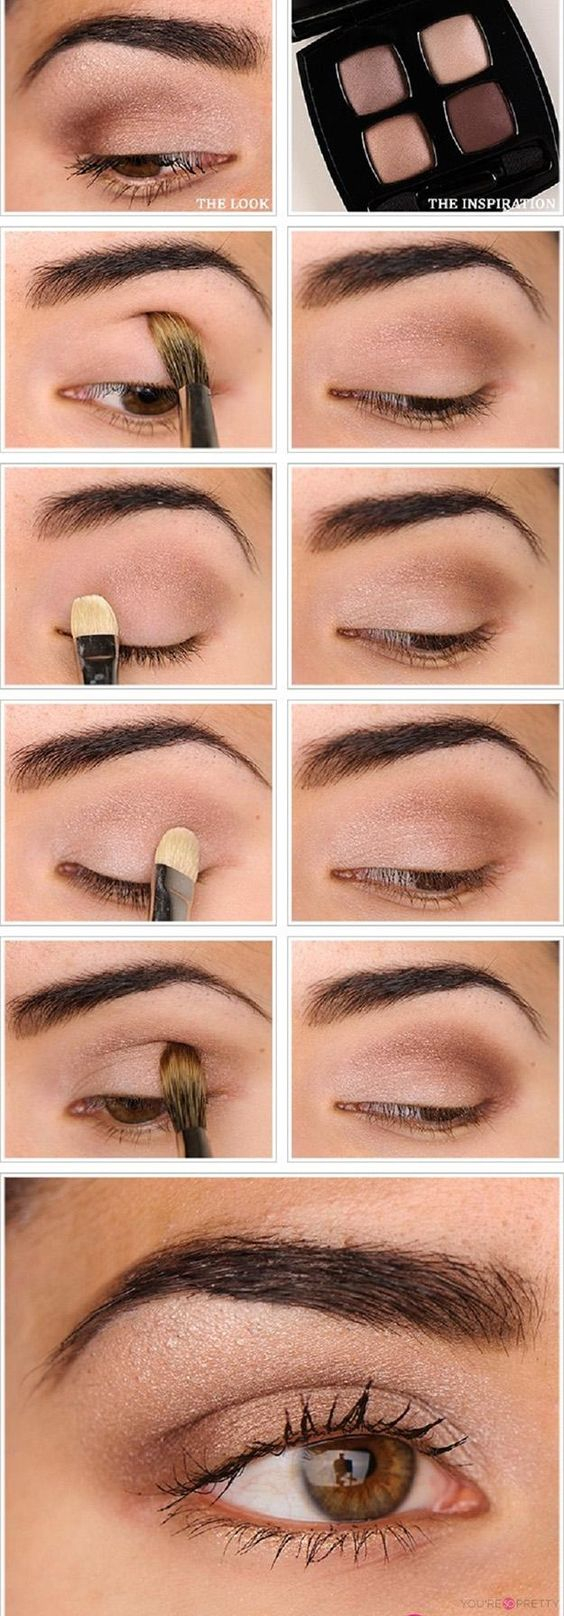 Natural Looking Eye Makeup 15 Eye Makeup Tutorials You Want To Try For Office Looks Pretty